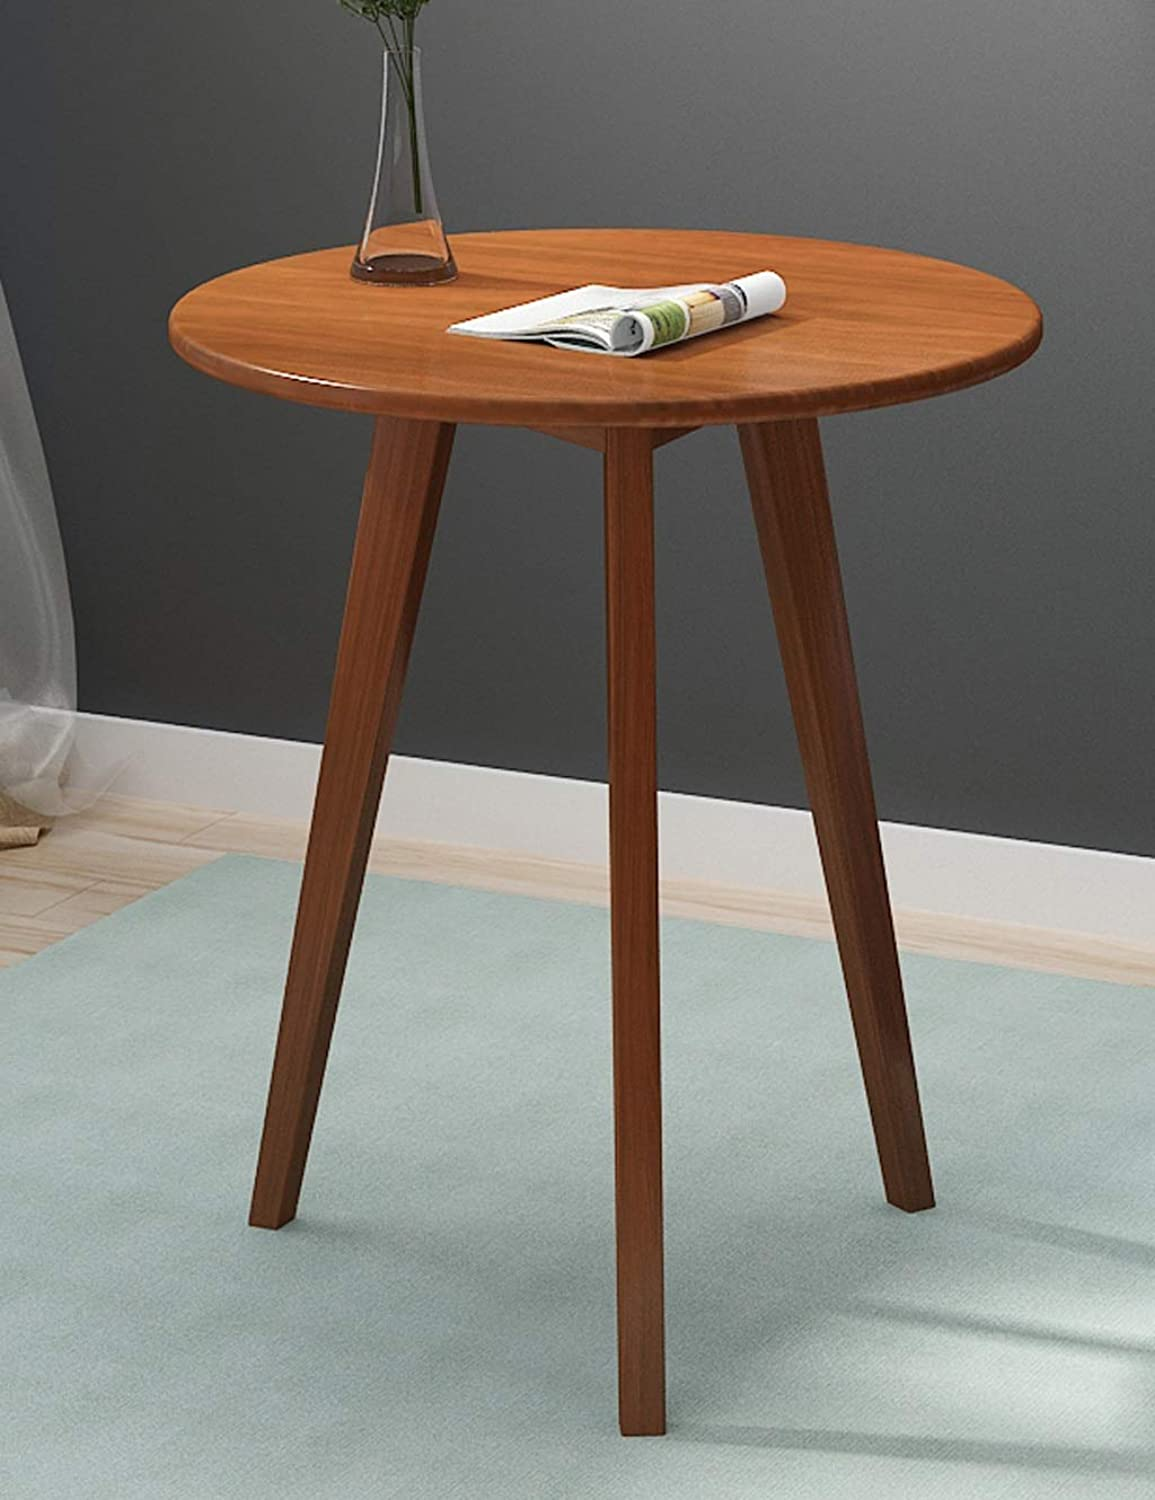 Small Round Table, Simple Mini Bedroom Home Small Coffee Table, Solid Wood Negotiation Small Table